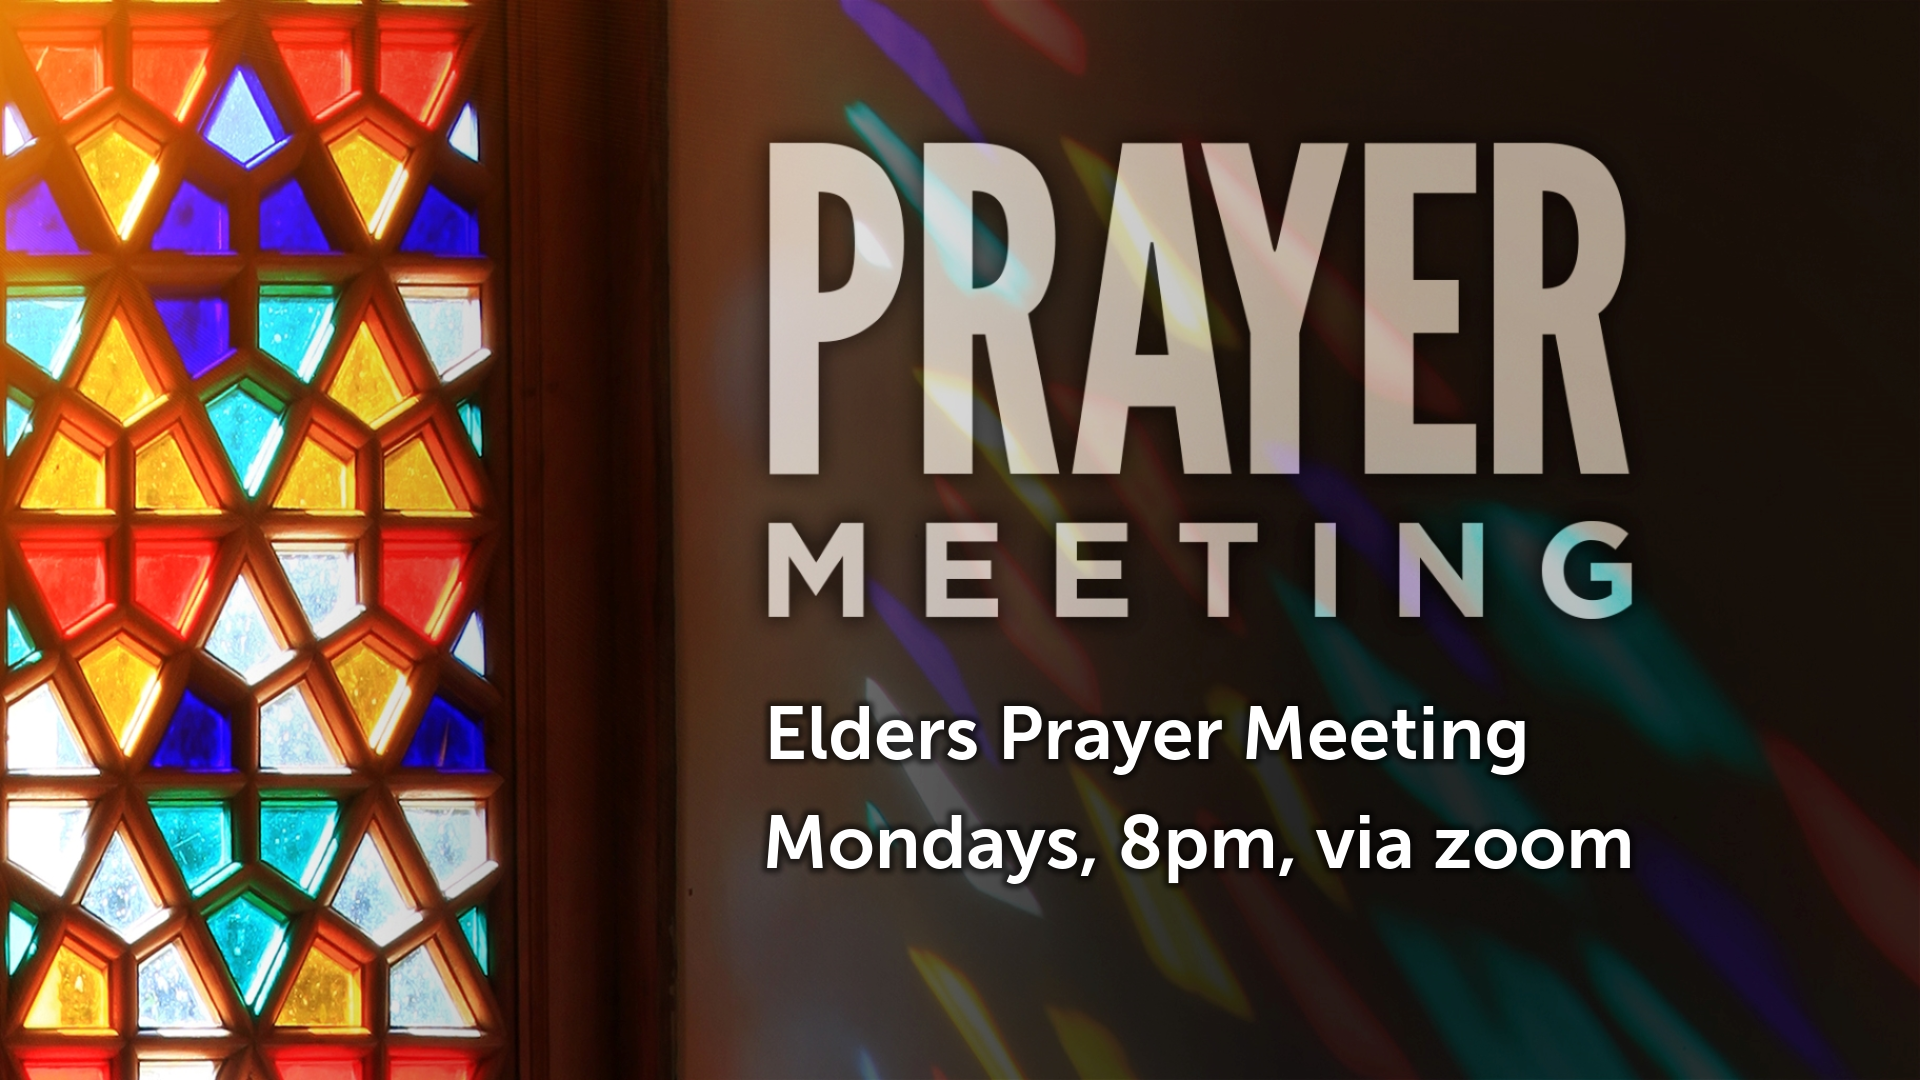 Elders Prayer Meeting image